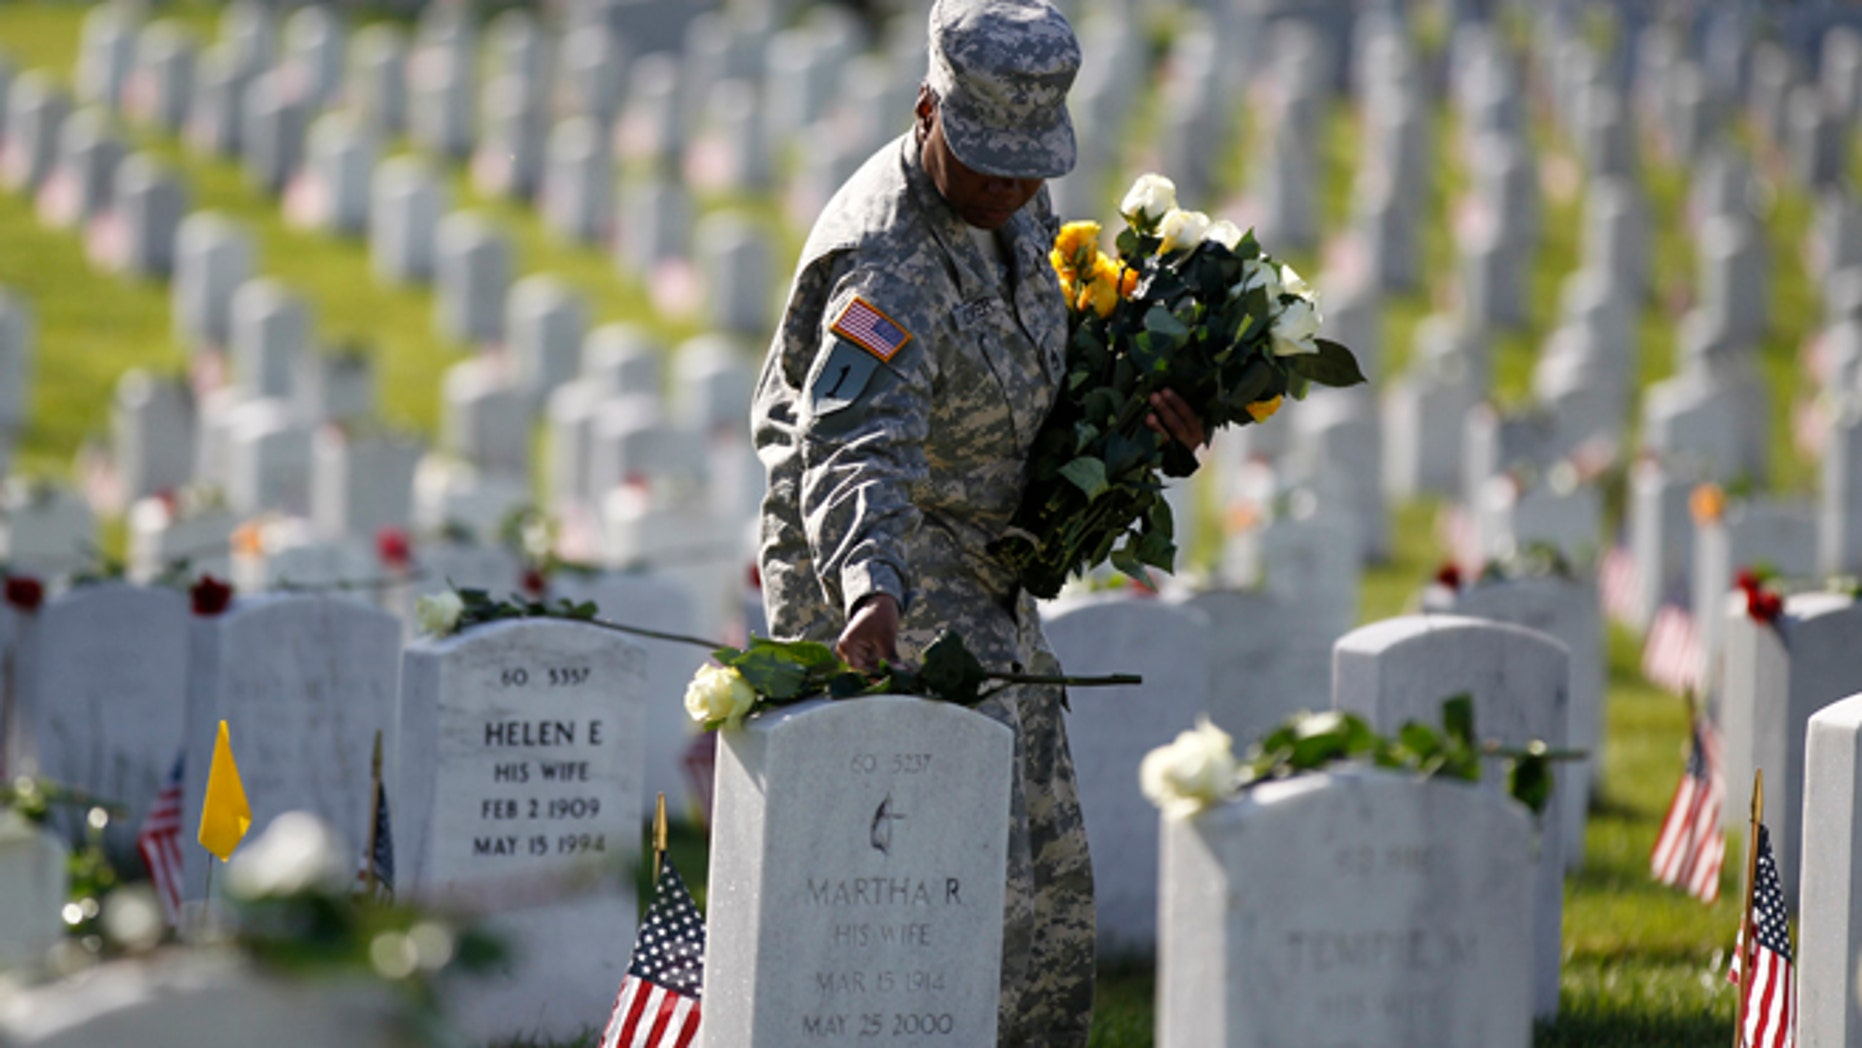 May 27, 2013: A soldier places roses on grave stones in Section 60 of Arlington National Cemetery on Memorial Day in Arlington, Va. Iraq and Afghanistan war veterans are buried in Section 60.